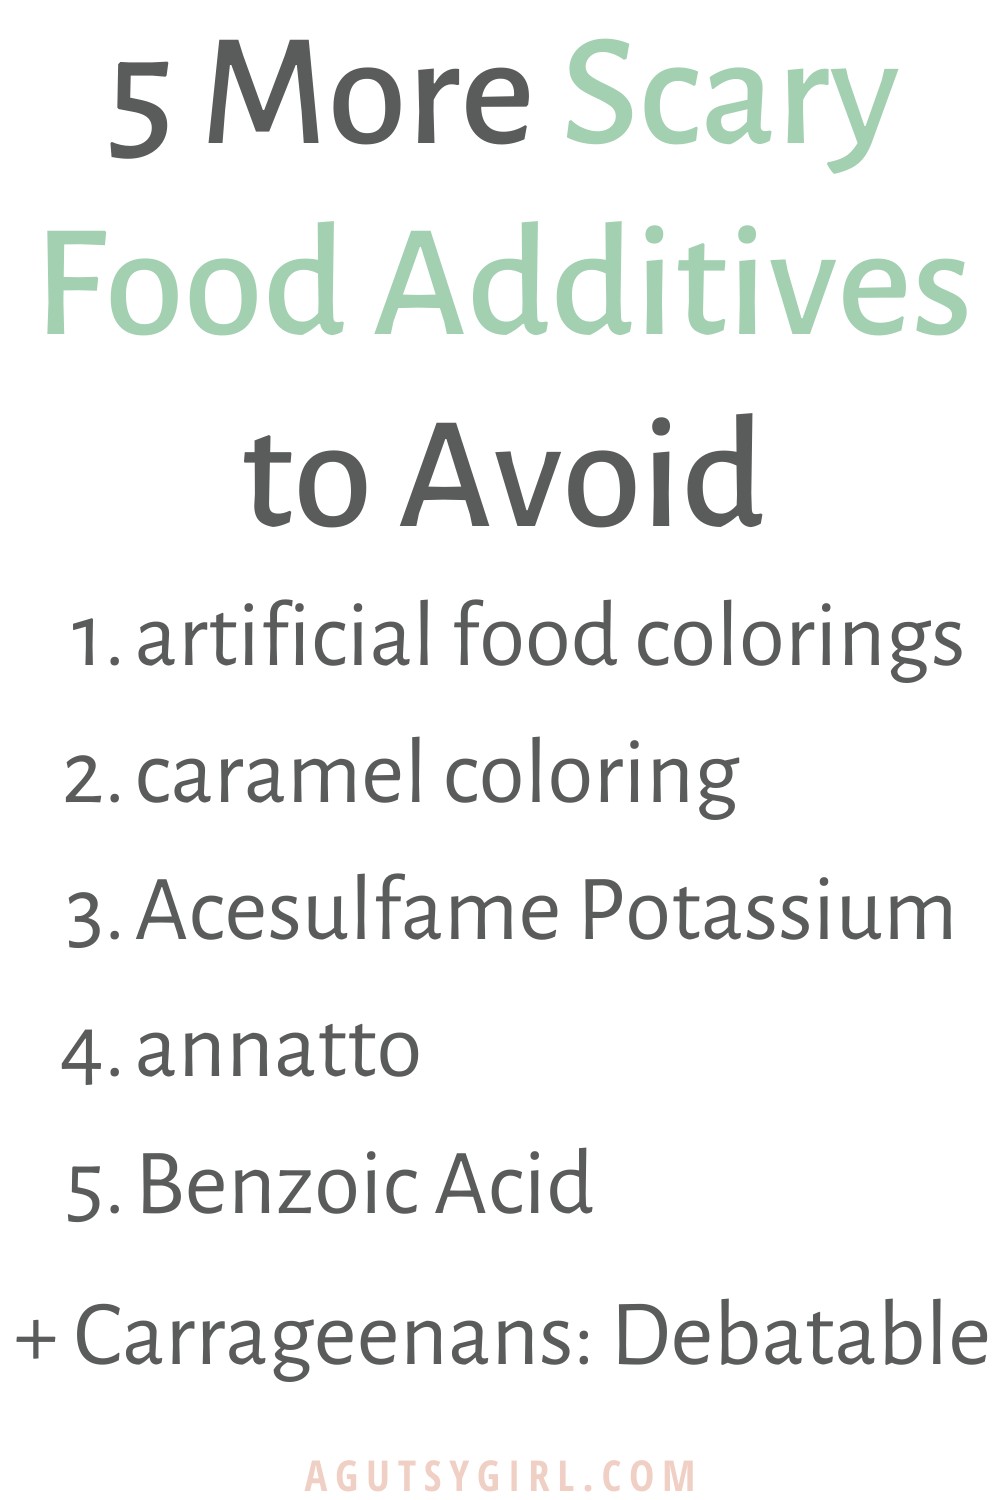 5 More Scary Food Additives to Avoid agutsygirl.com #foodadditives #guthealth #eatrealfood #carrageenans